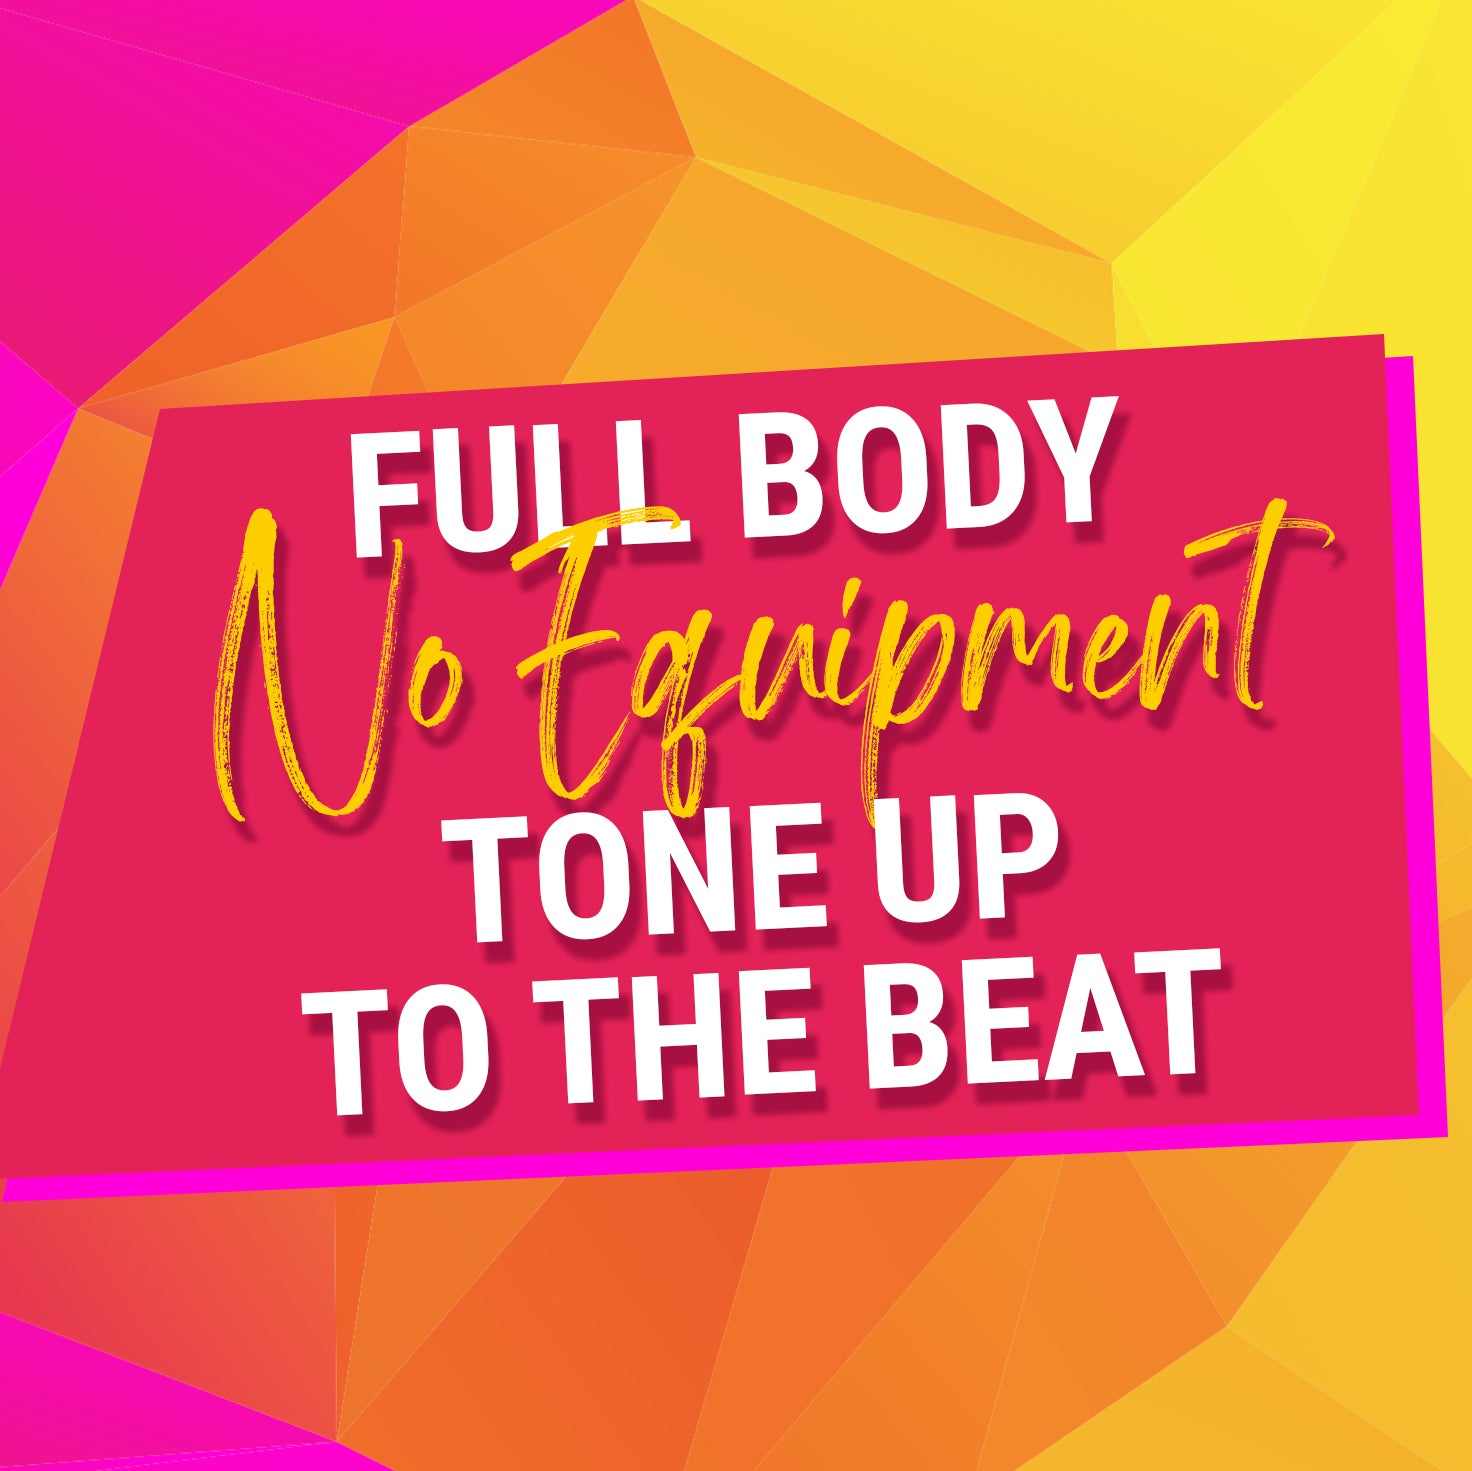 *TONE UP TO THE BEAT* FULL BODY TONING SESSION | BOOST METABOLISM